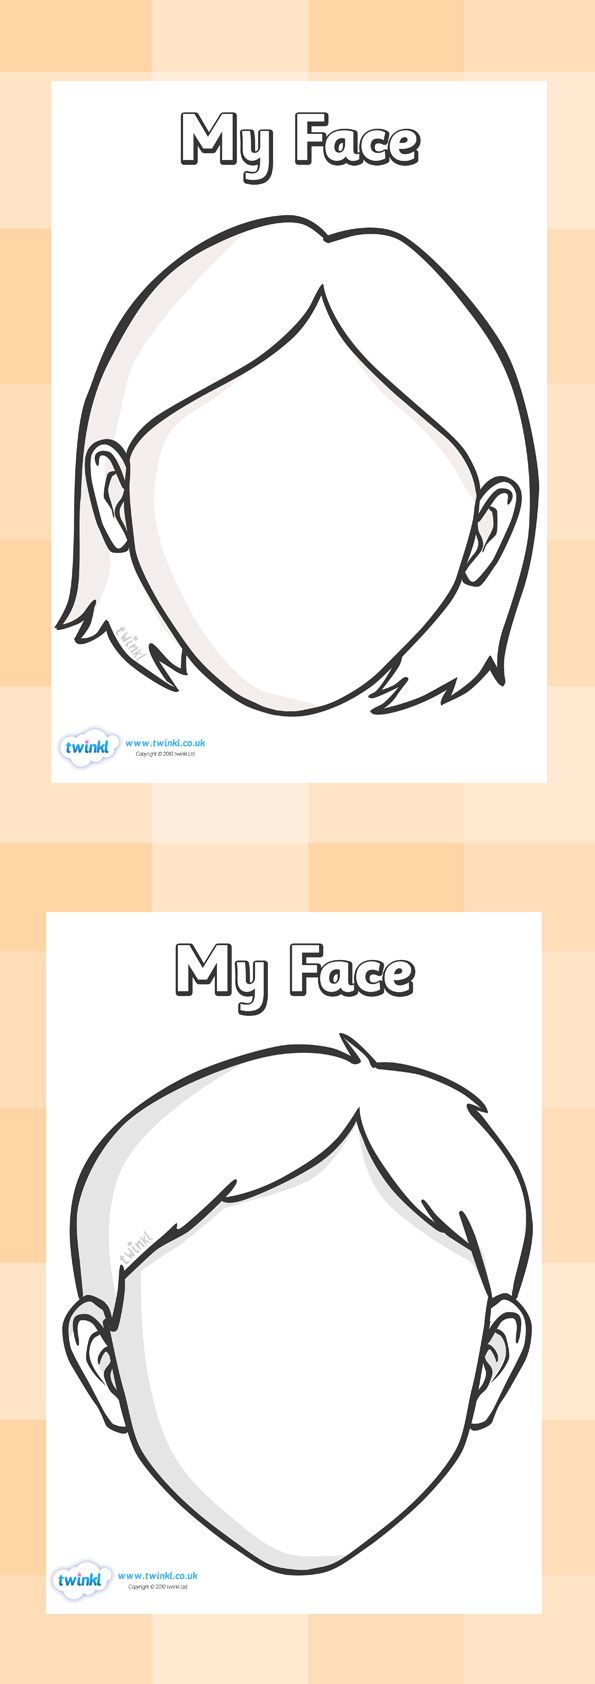 Twinkl Resources Blank Face Templates Classroom printables for Pre-School, Kindergarten, Elementary School and beyond! Topics, Ourselves, Face, Activities